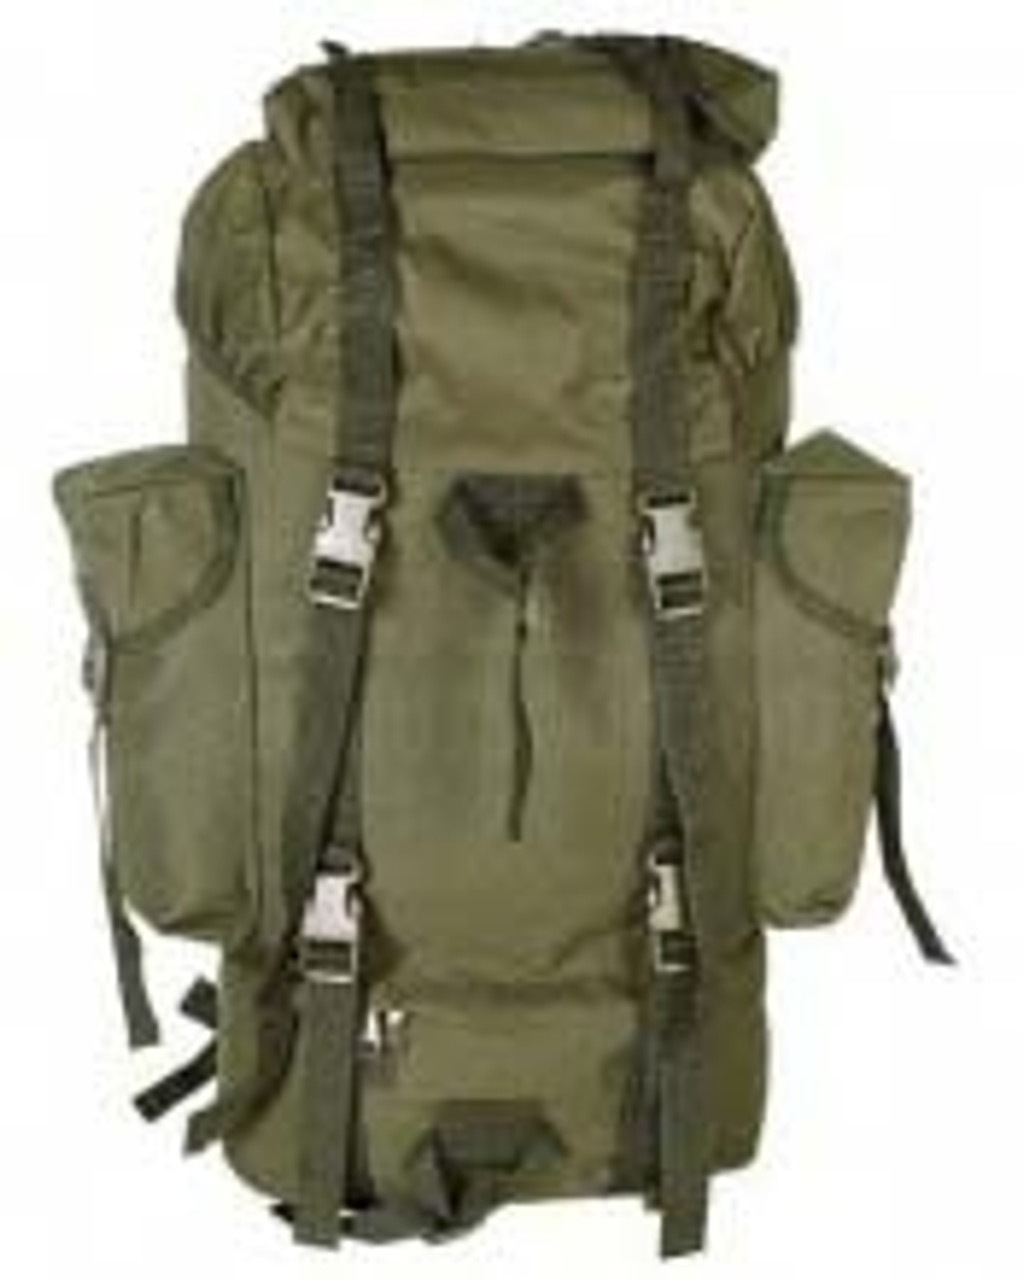 Bw Style OD Large Combat Rucksack - NEW from Hessen Antique